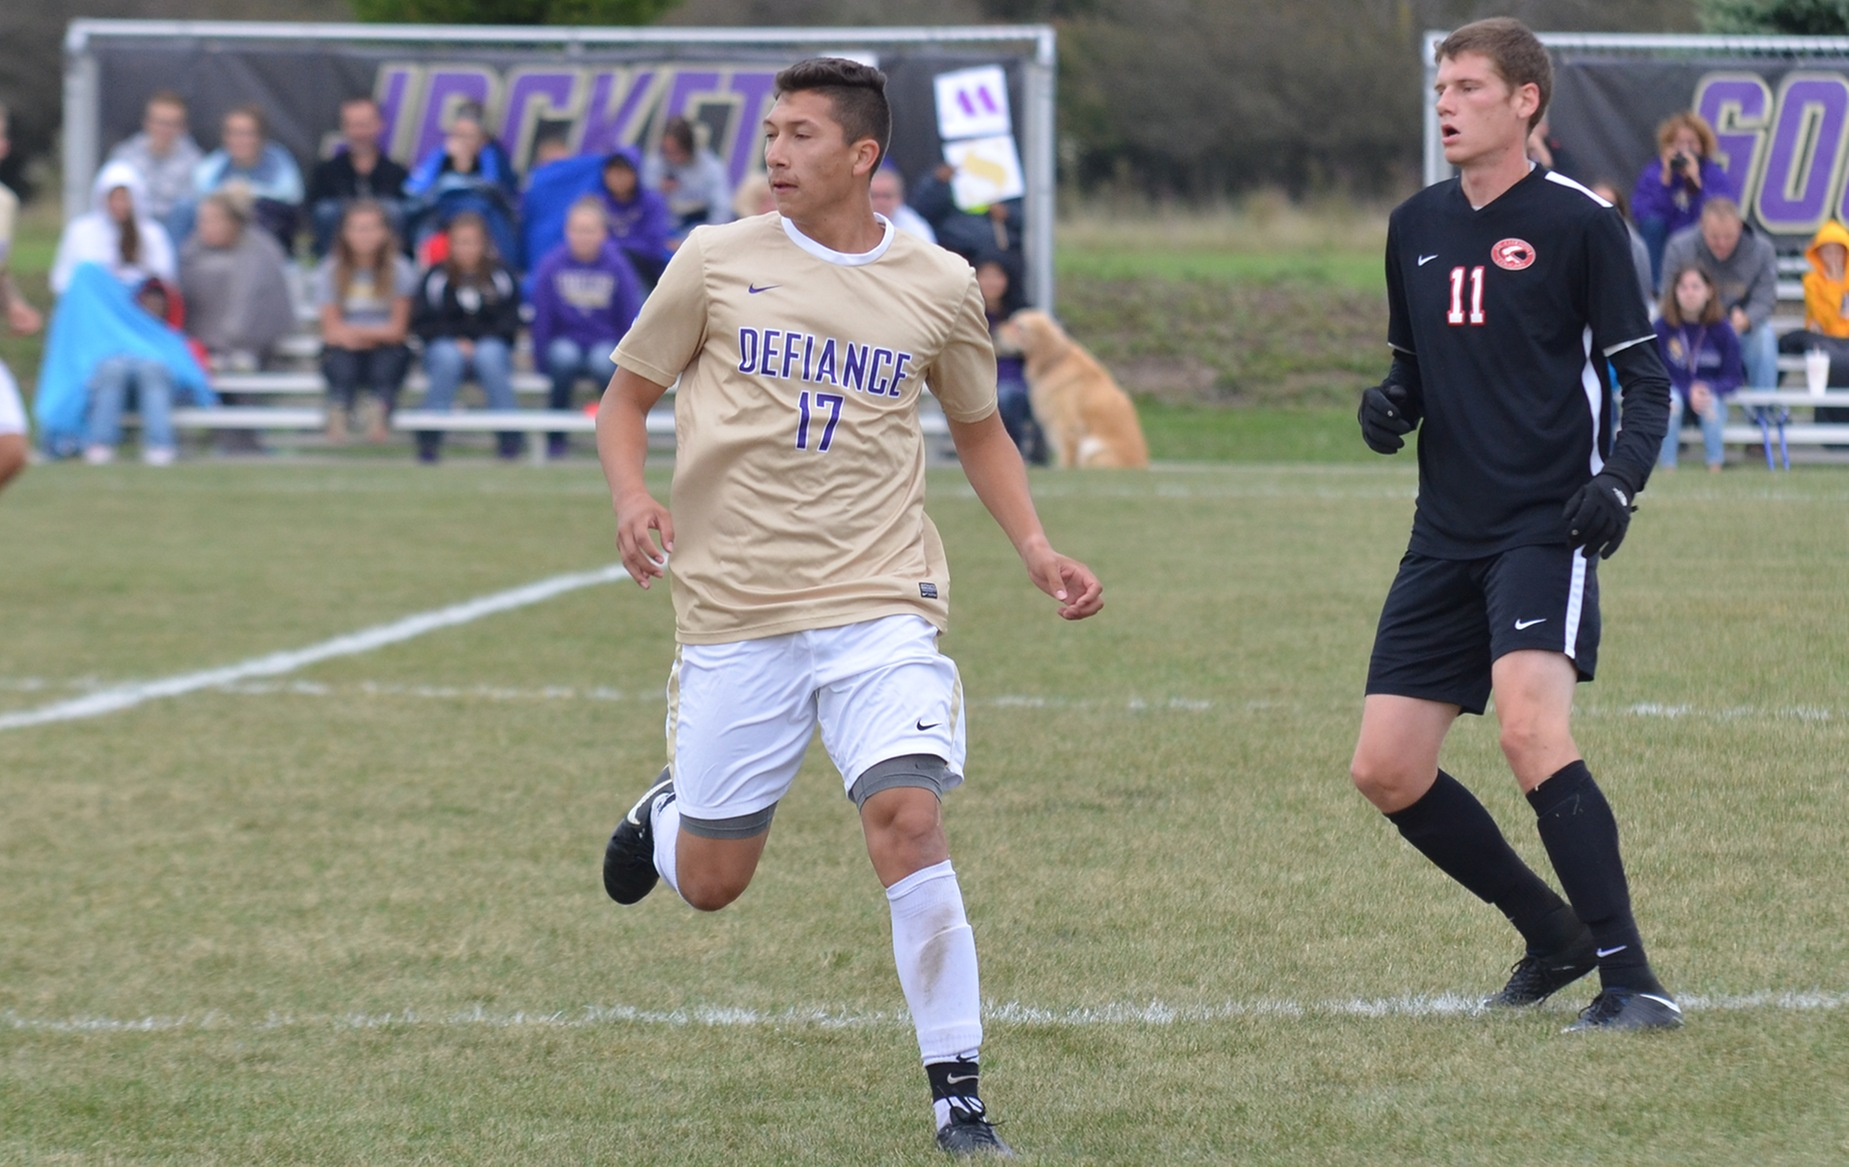 Defiance Earns 4-0 Victory on Second Day of Road Trip